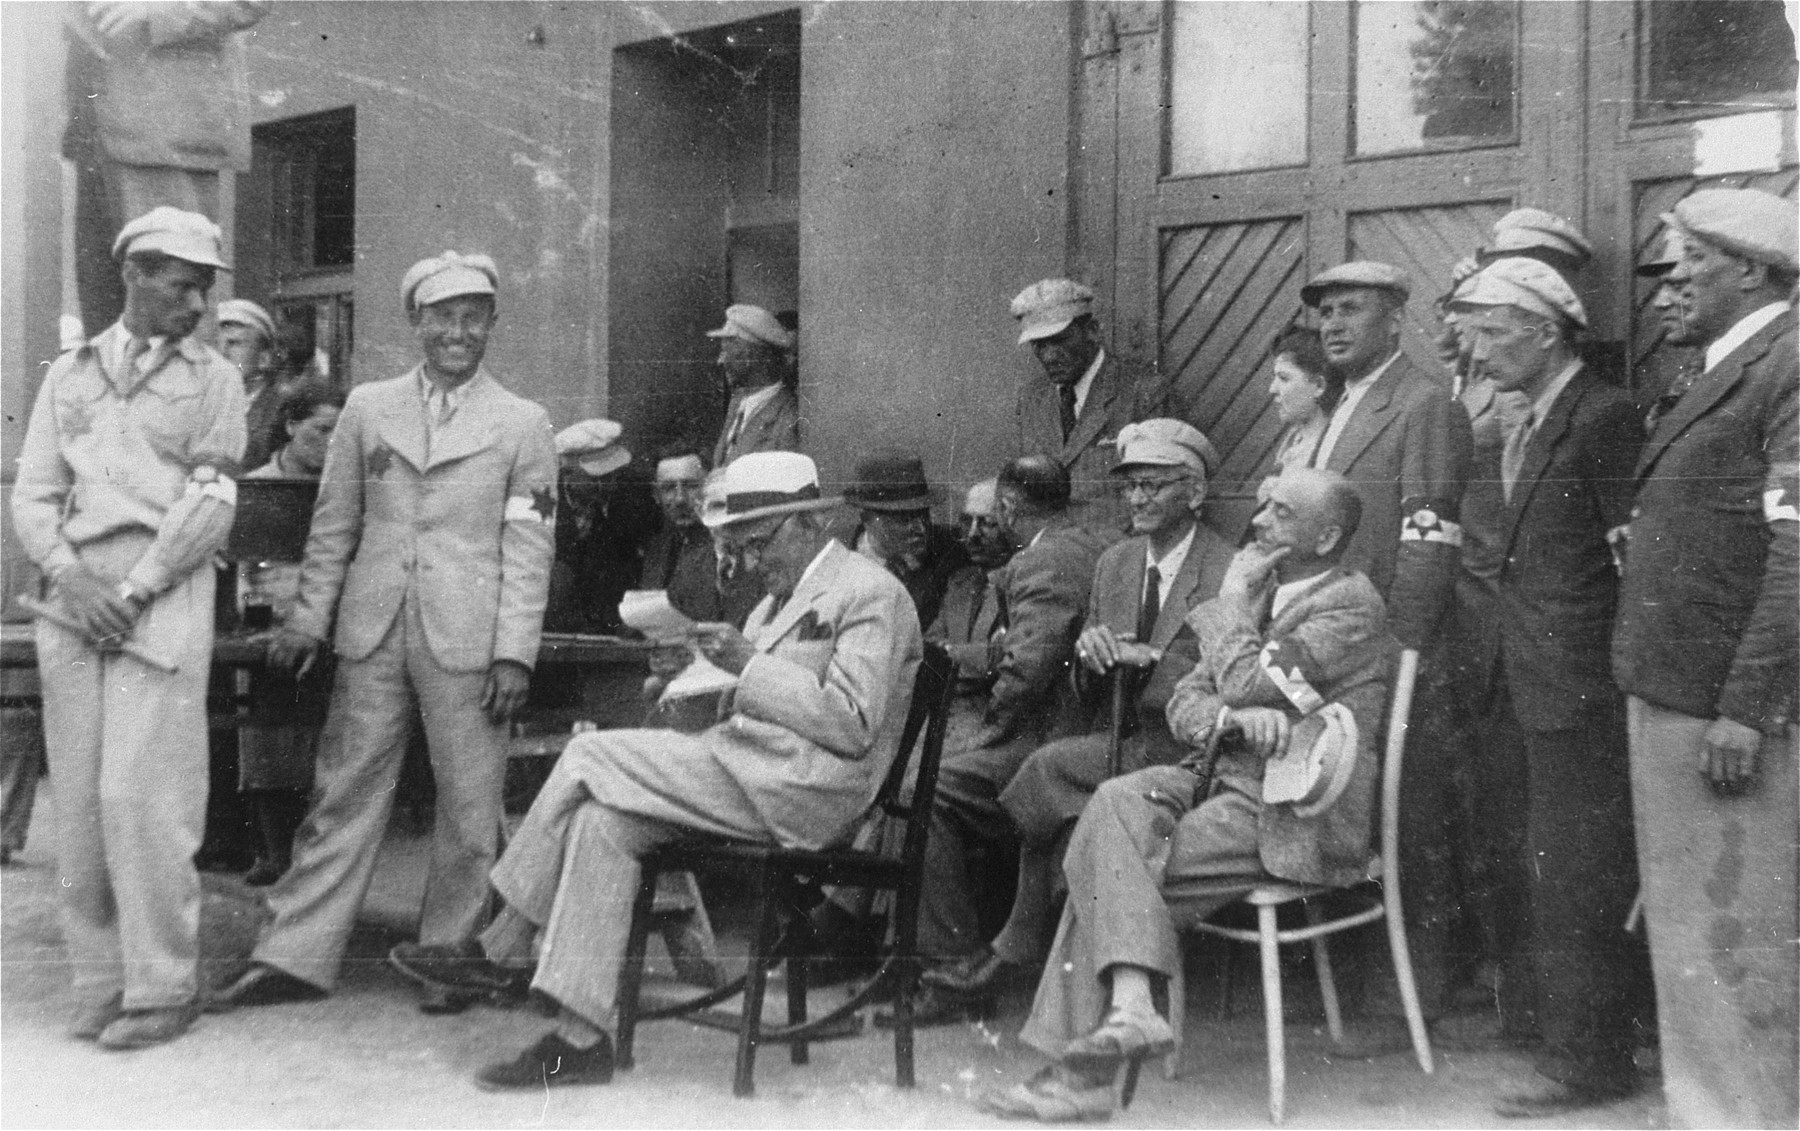 Mordechai Chaim Rumkowski (seated in the center), attends an event with members of the Jewish police and Sonderkommando.  Also pictured is Leon Rozenblat (seated at the right, holding his cap).